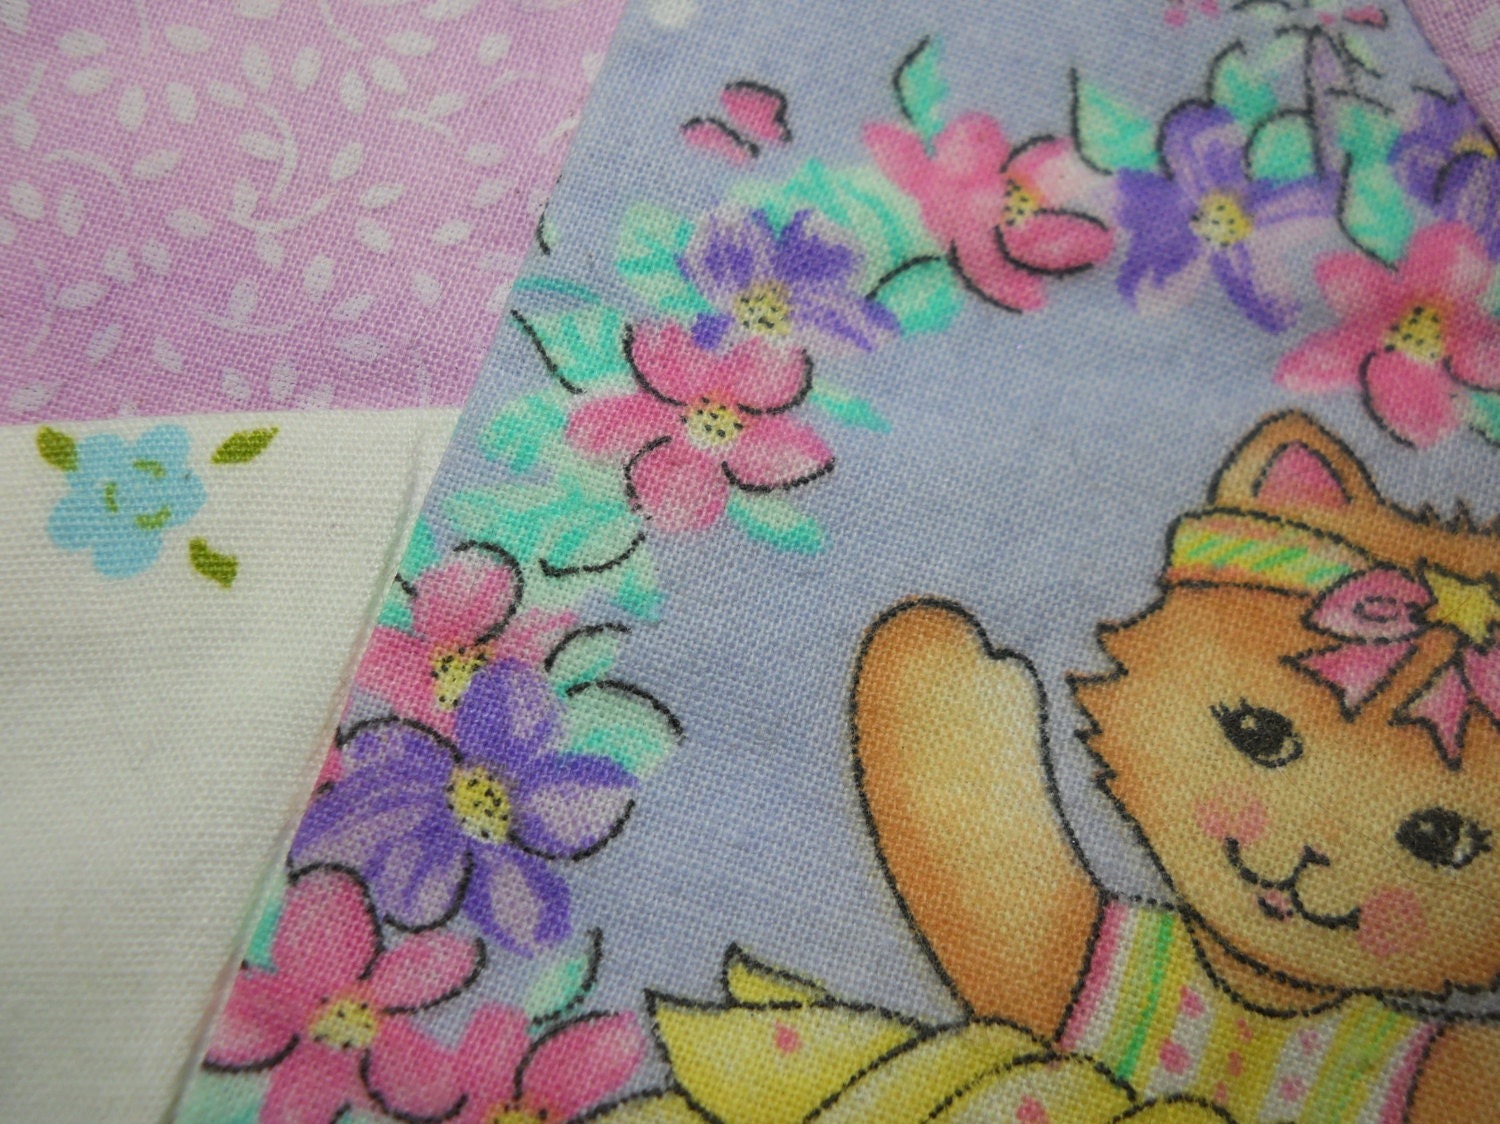 Crazy Quilt Pattern Fabric : Crazy Quilt Square Quilt Square Fabric Art Kitty Quilt